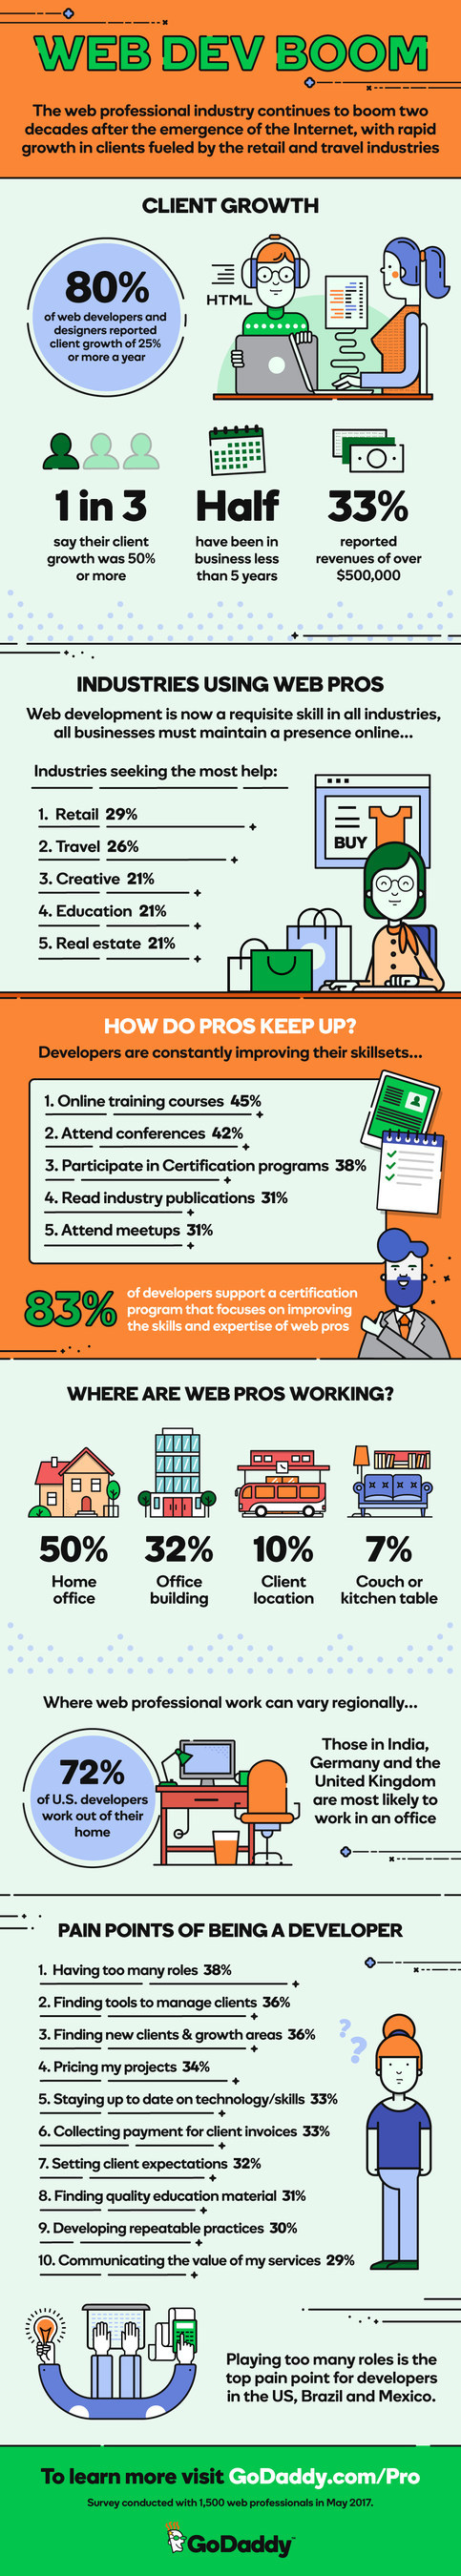 Web Dev Boom - The web professional industry continues to boom two decades after the emergence of the Internet, with rapid growth in clients fueled by the retail and travel industries